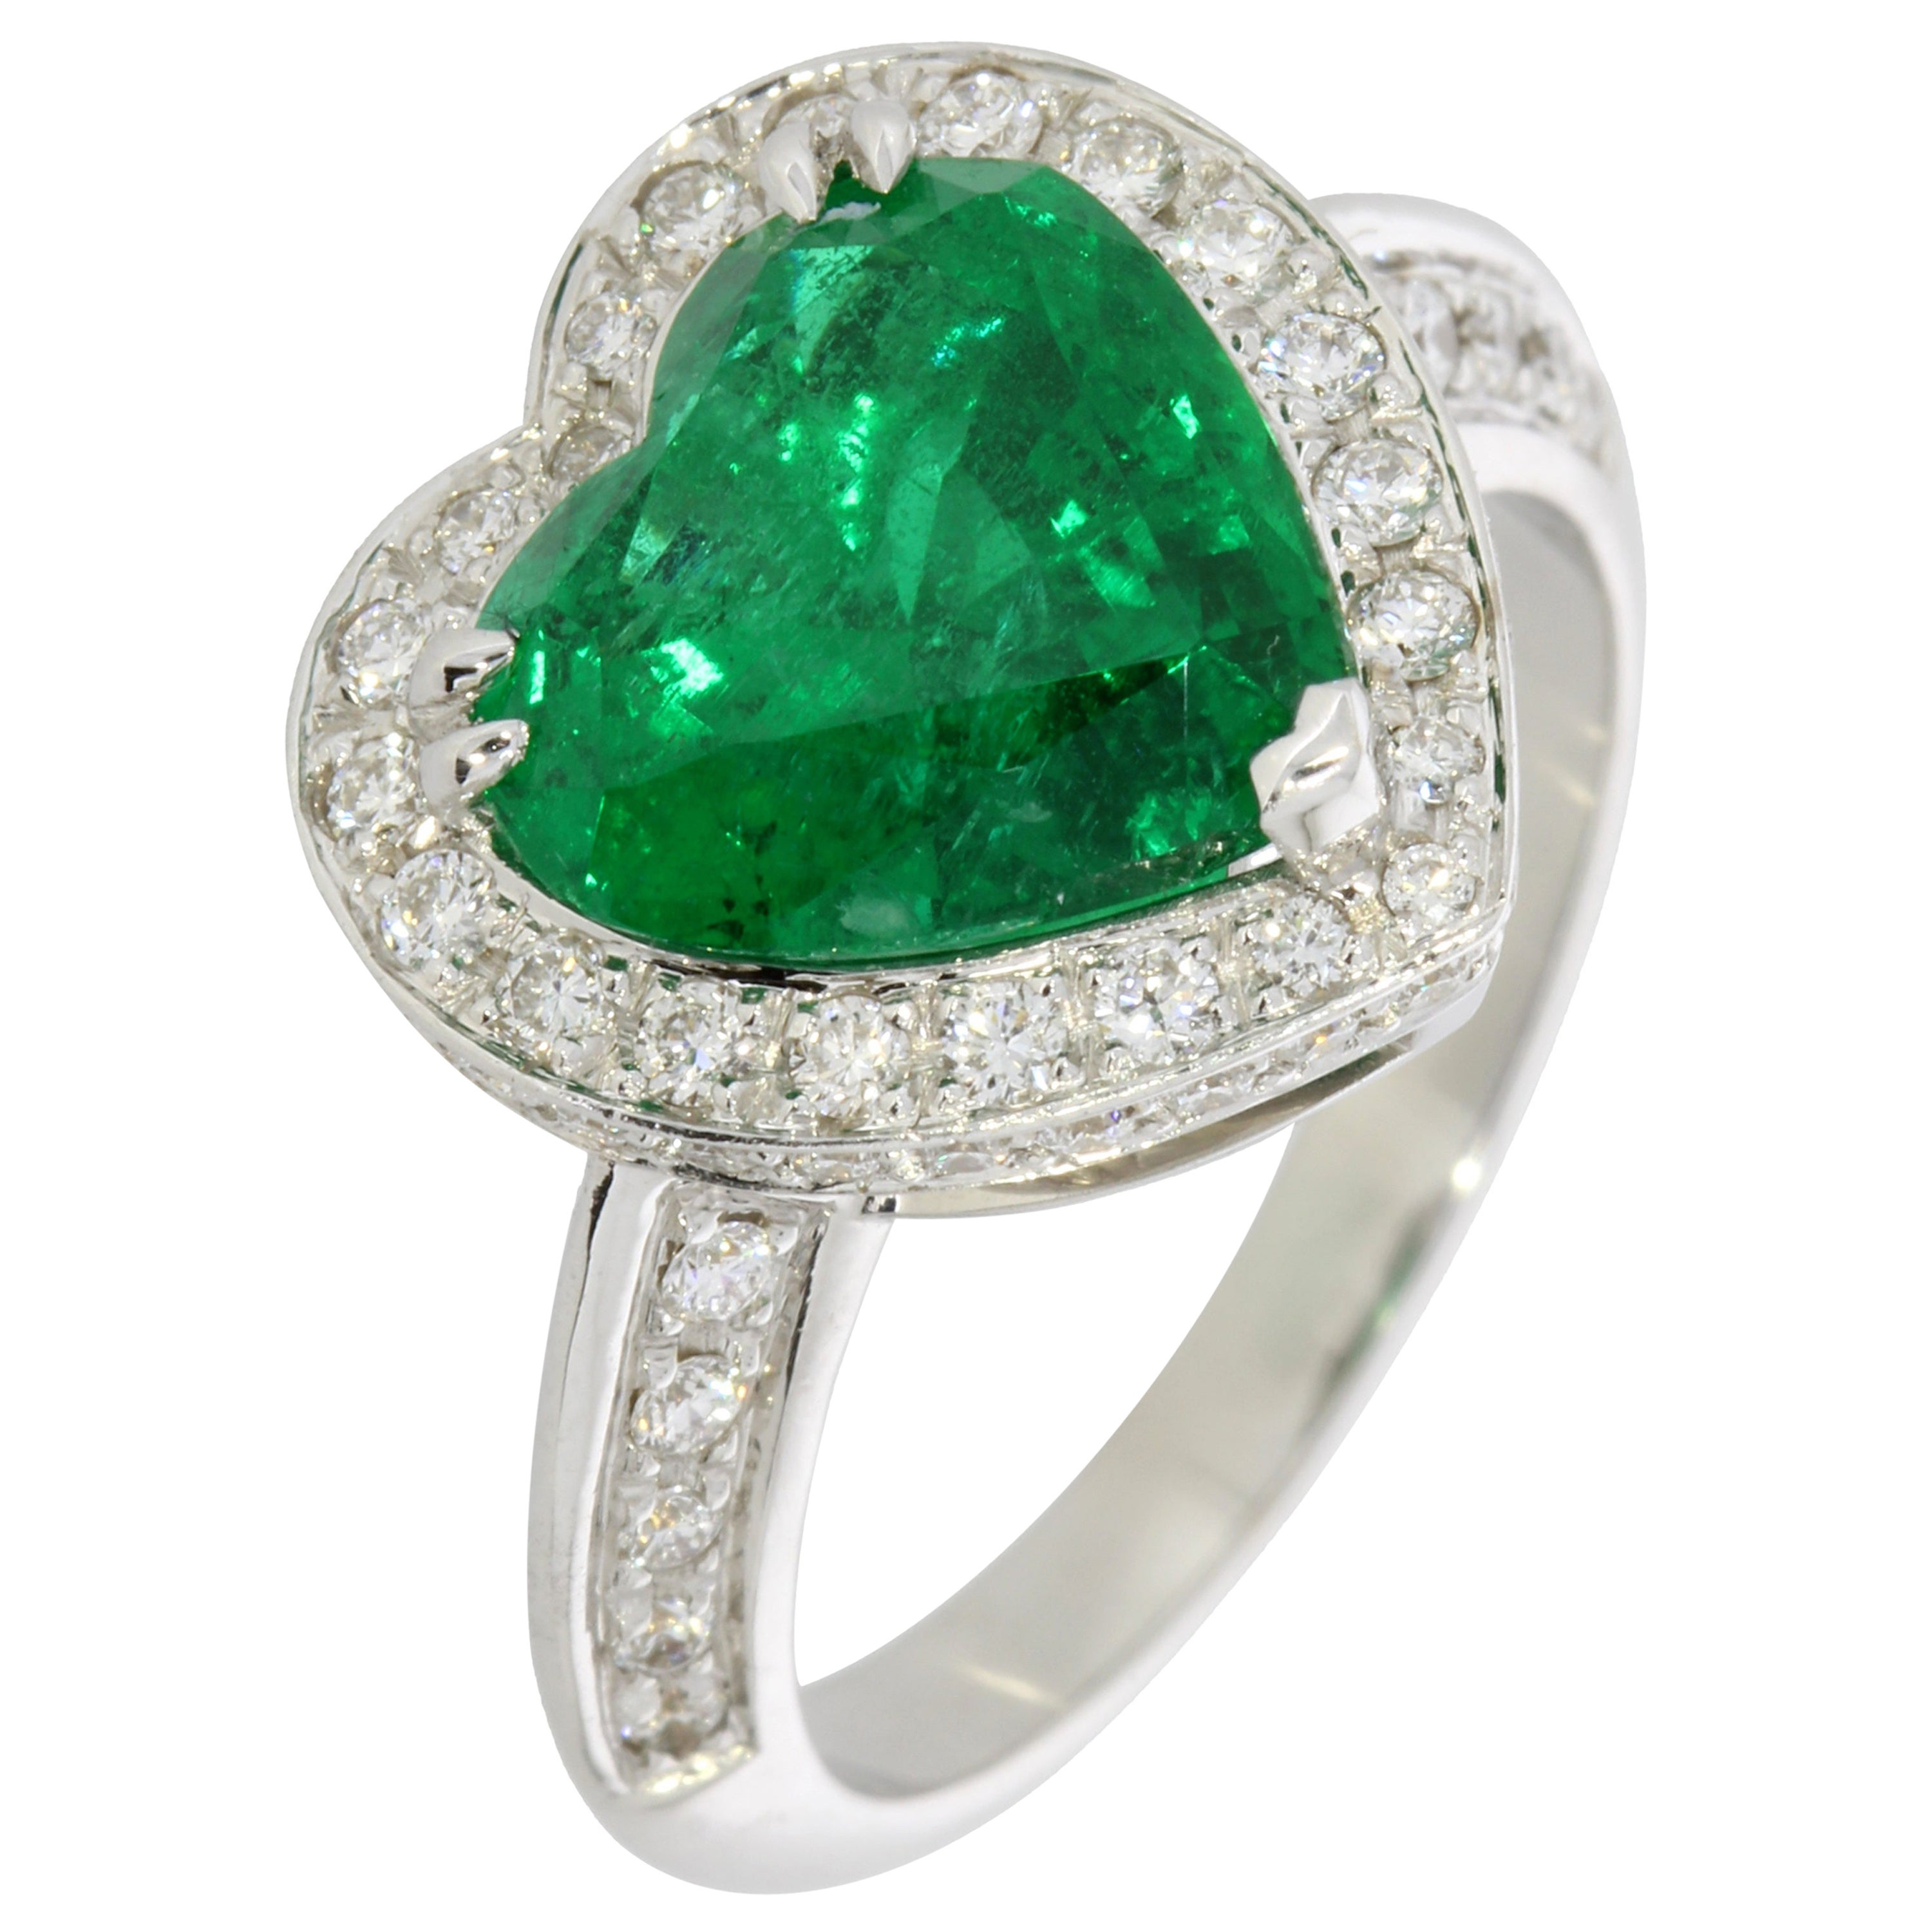 Emerald and Diamond Heart Ring 18 Karat White Gold Collection by Niquesa